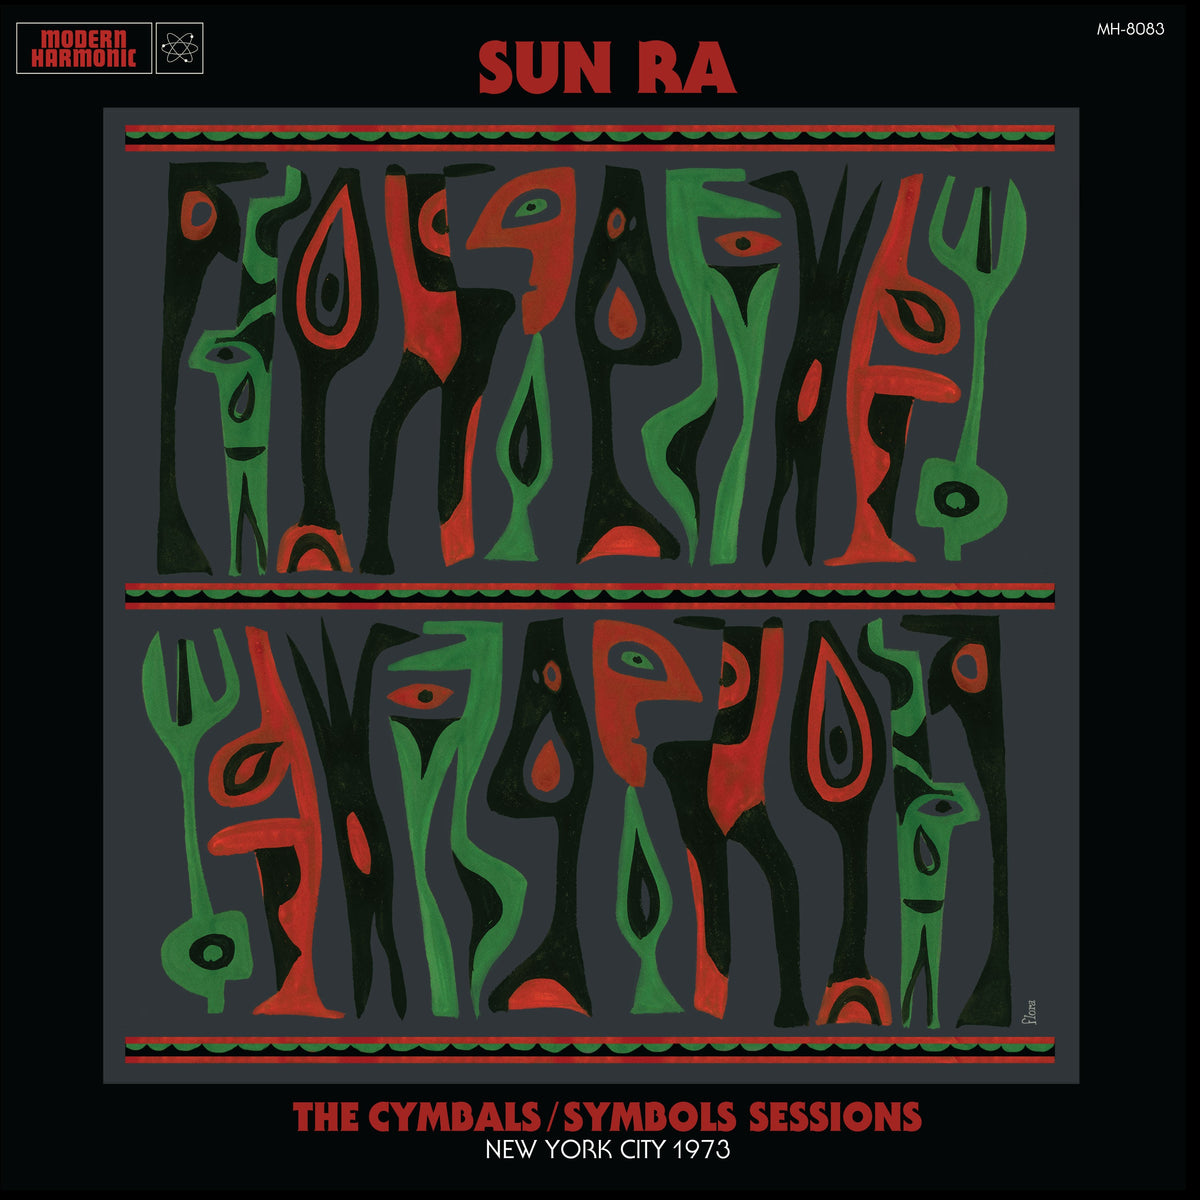 Sun Ra: The Cymbals / Symbols Sessions: New York City 1973 (Colored Vinyl) Vinyl 2LP (Record Store Day)